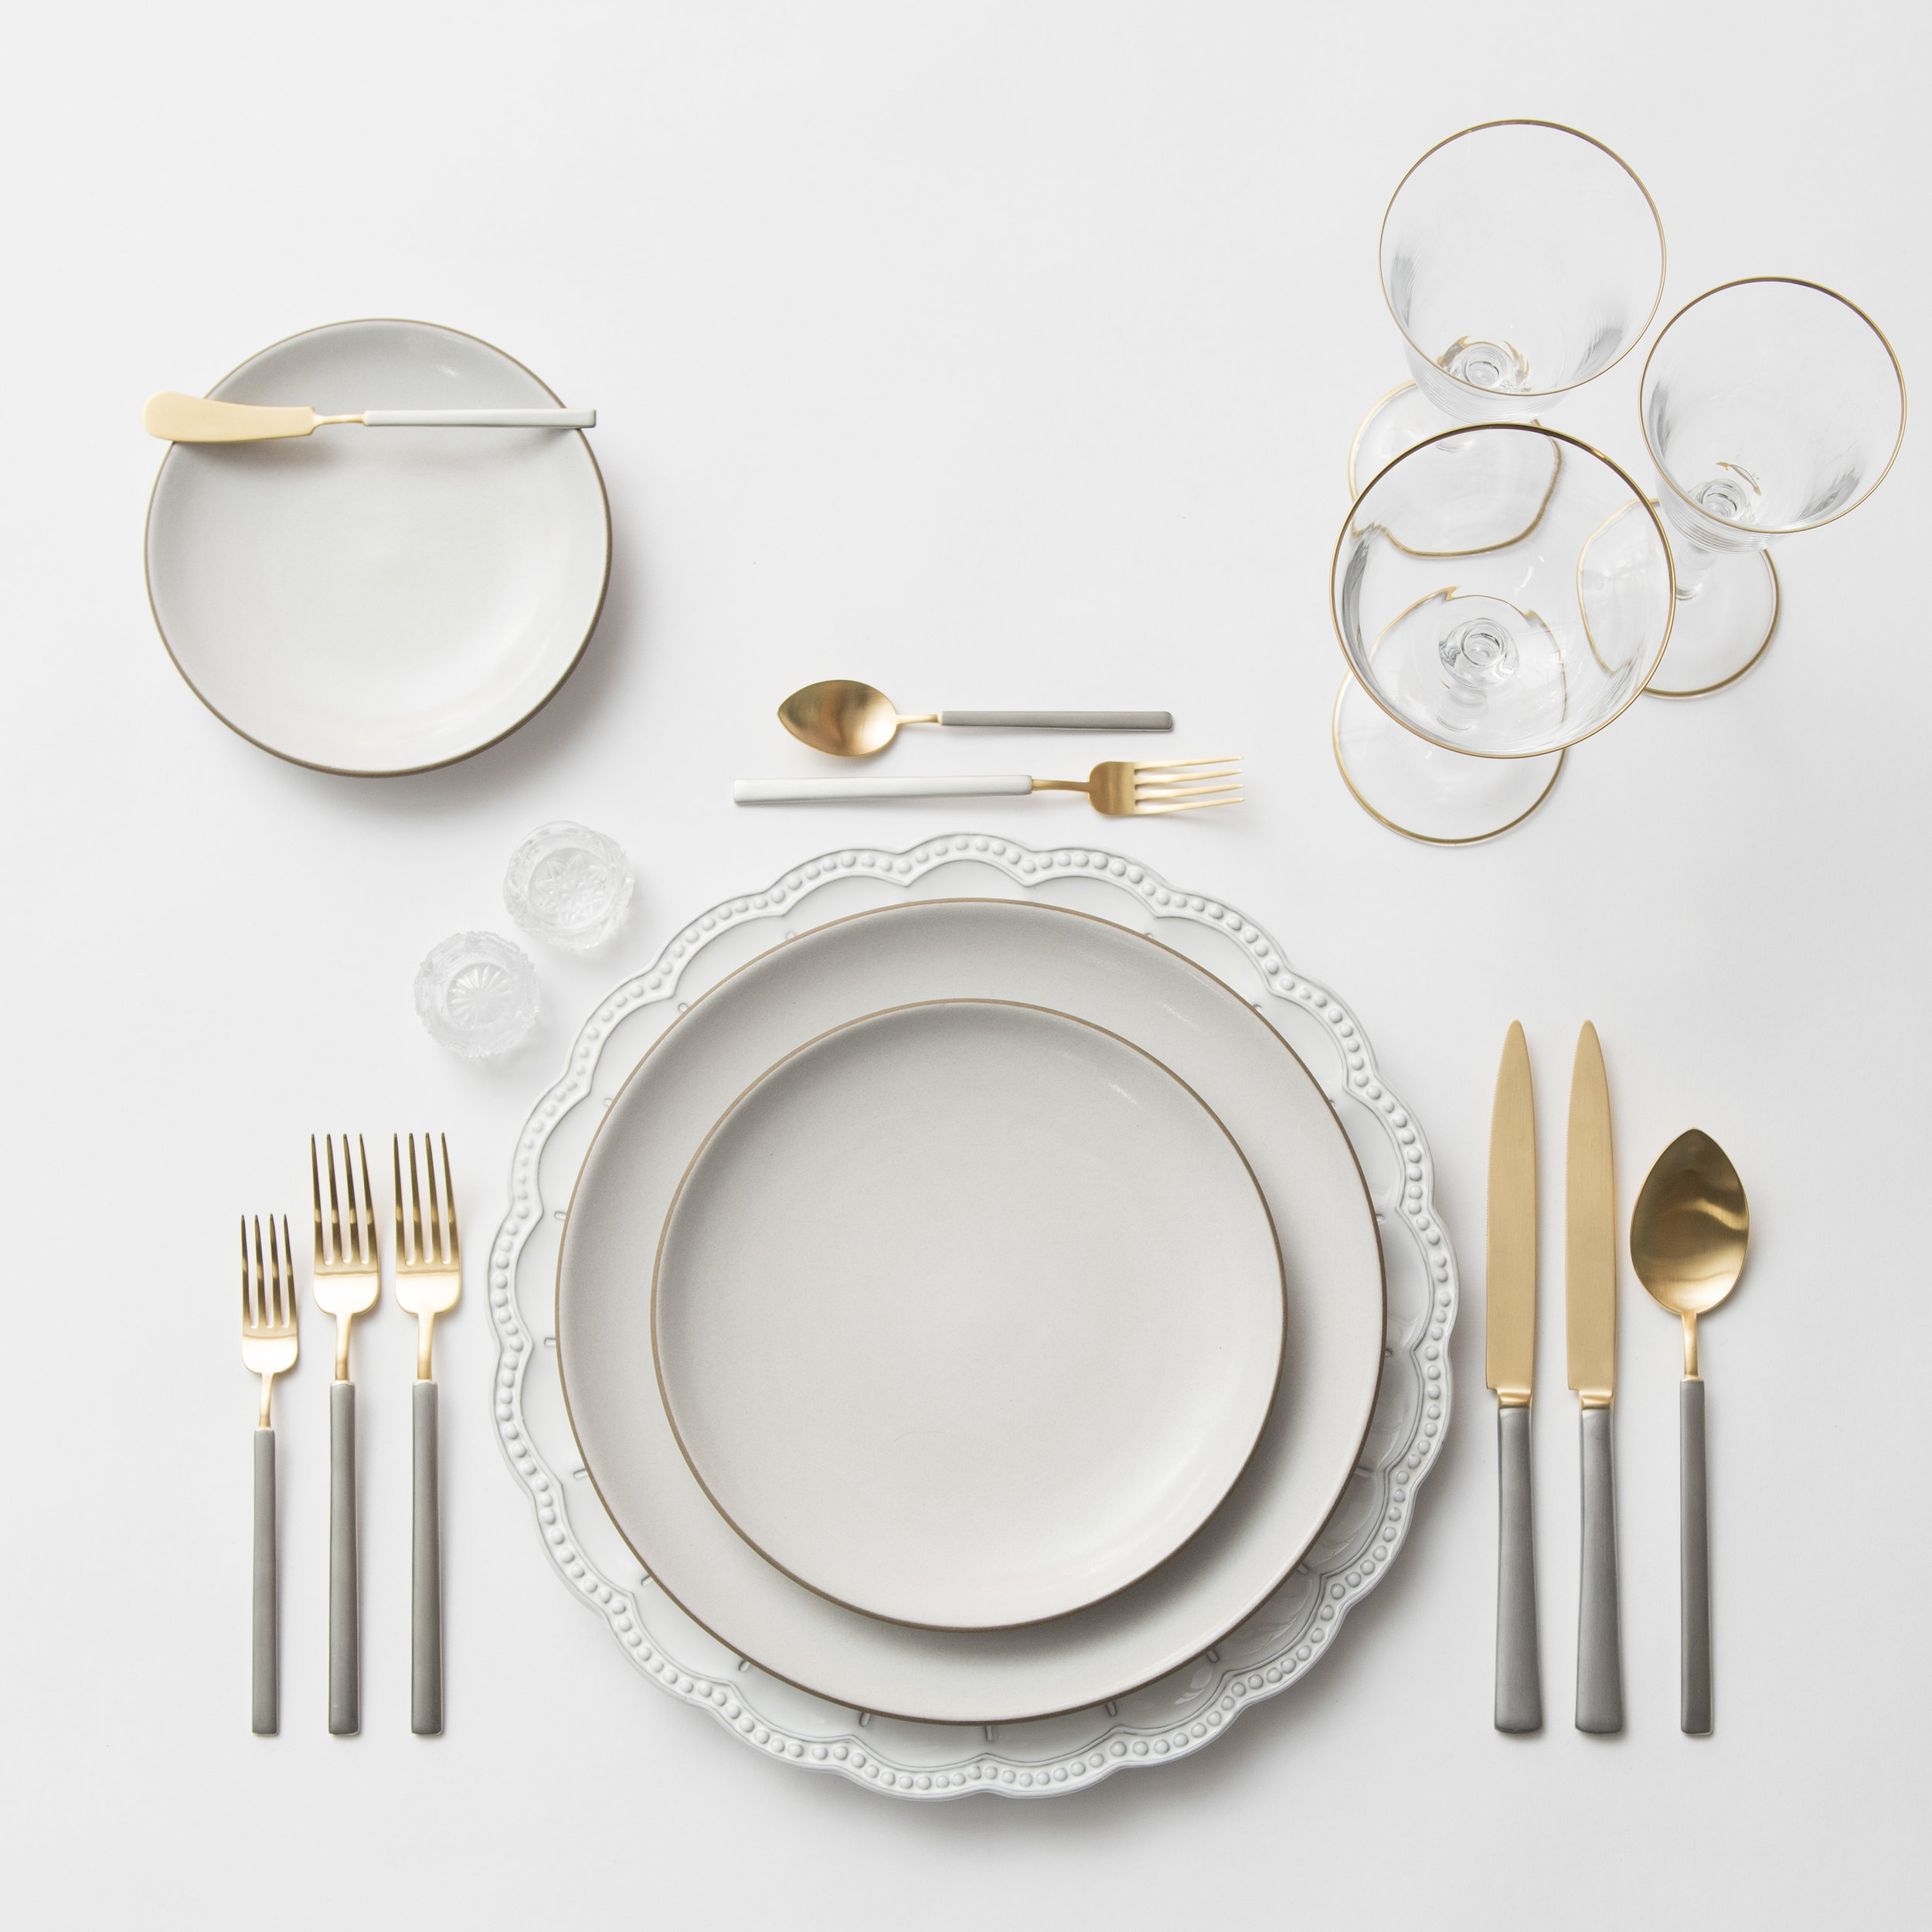 RENT: Signature Collection Chargers + Heath Ceramics in Opaque White + Axel Flatware in Matte 24k Gold/Silver + Chloe 24k Gold Rimmed Stemware + Antique Crystal Salt Cellars   SHOP:Chloe 24k Gold Rimmed Stemware